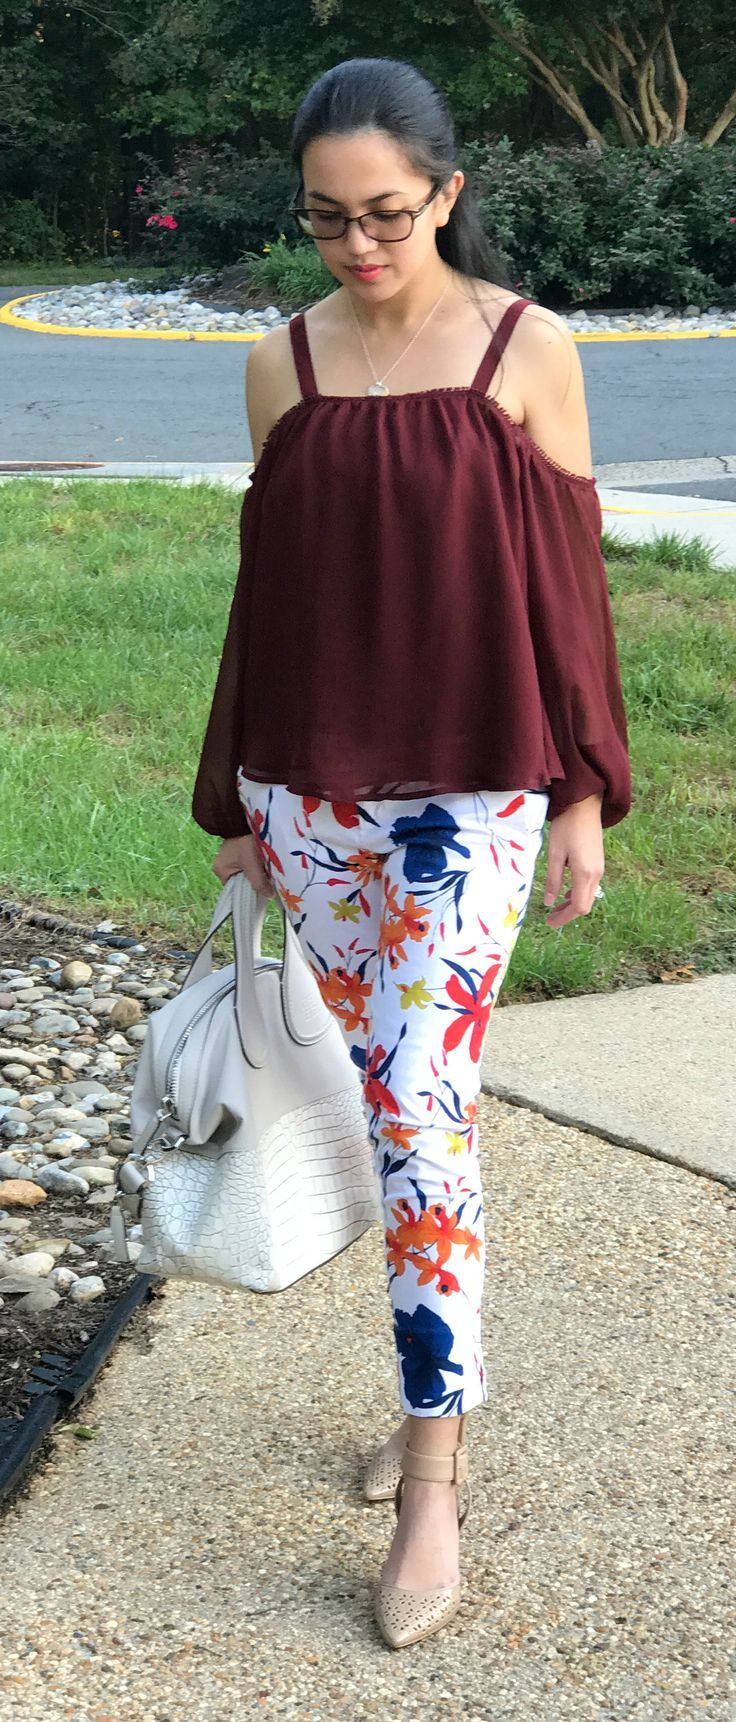 Express cold shoulder top, Banana Republic floral pants, Sam Edelman nude shoes, Givenchy croc embossed nightingale - outfit idea for women in fall. Click on the image to learn more. #fashion #style